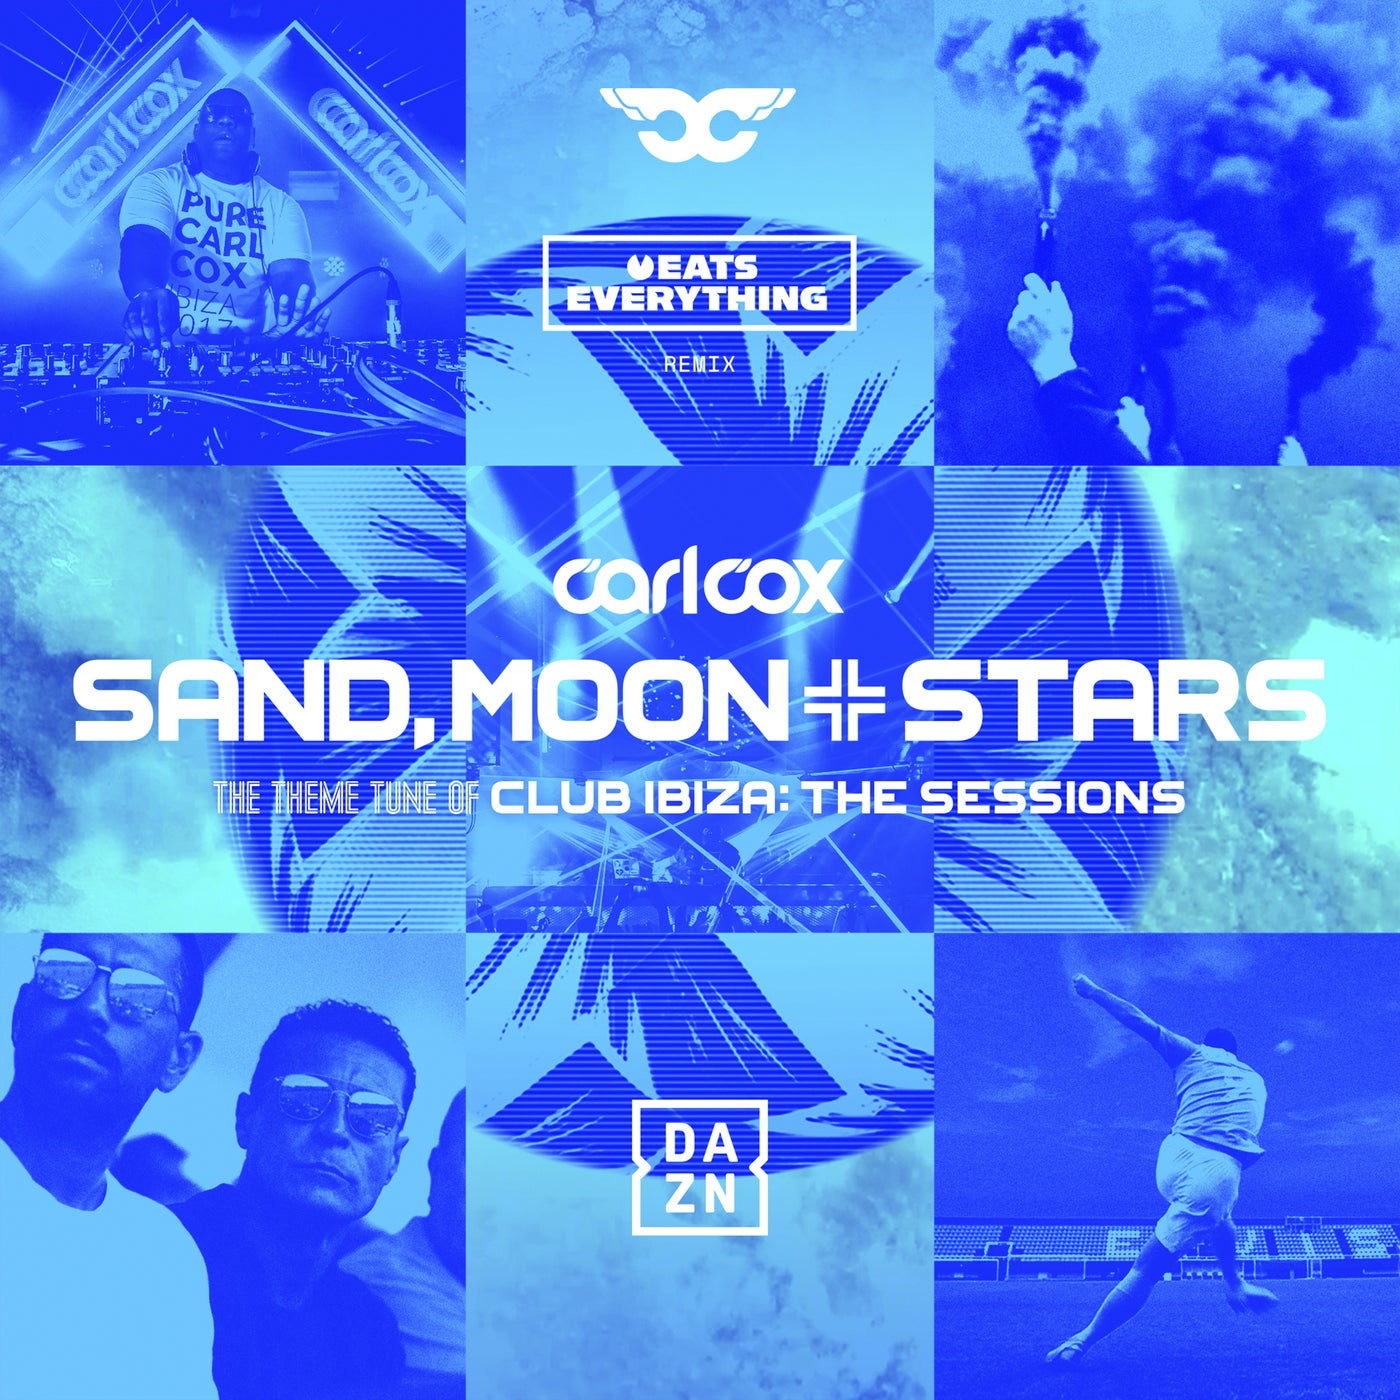 Download Sand, Moon & Stars (Eats Everything Remix) on Electrobuzz